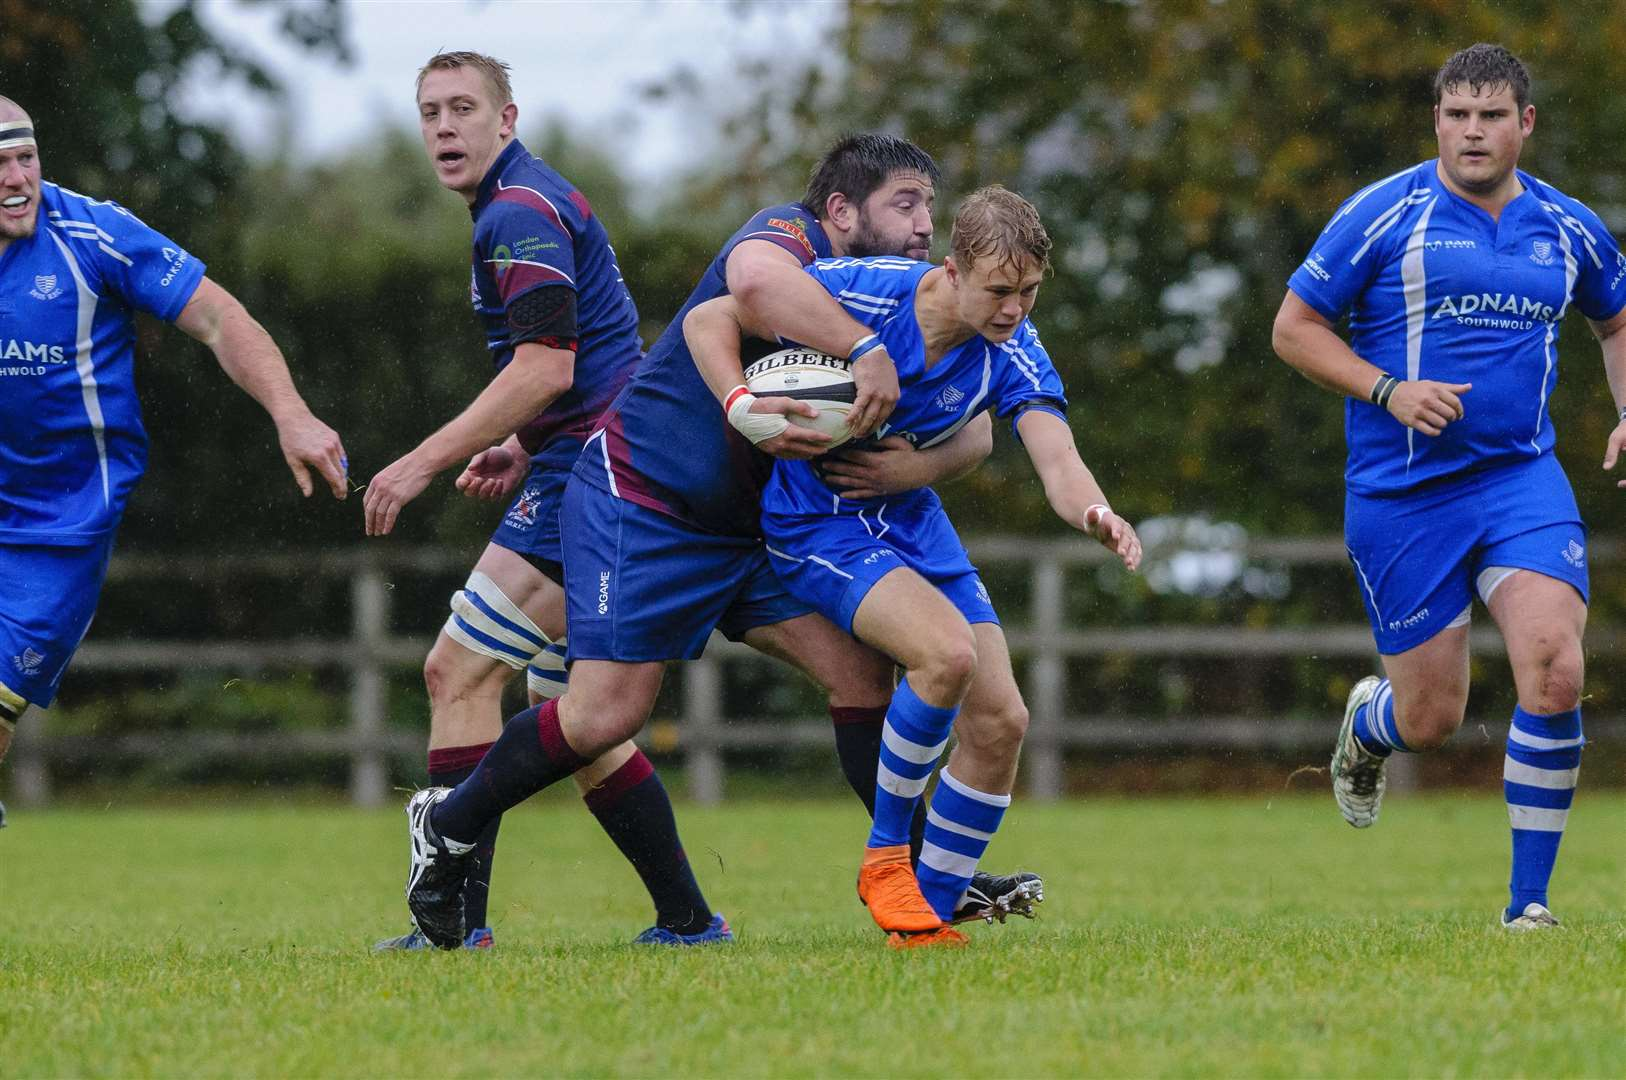 Roydon, Norfolk, UK, 06 October 2018..Rugby action from Diss v Old Haberdashers - George Jones..Picture: Mark Bullimore Photography. (4635736)